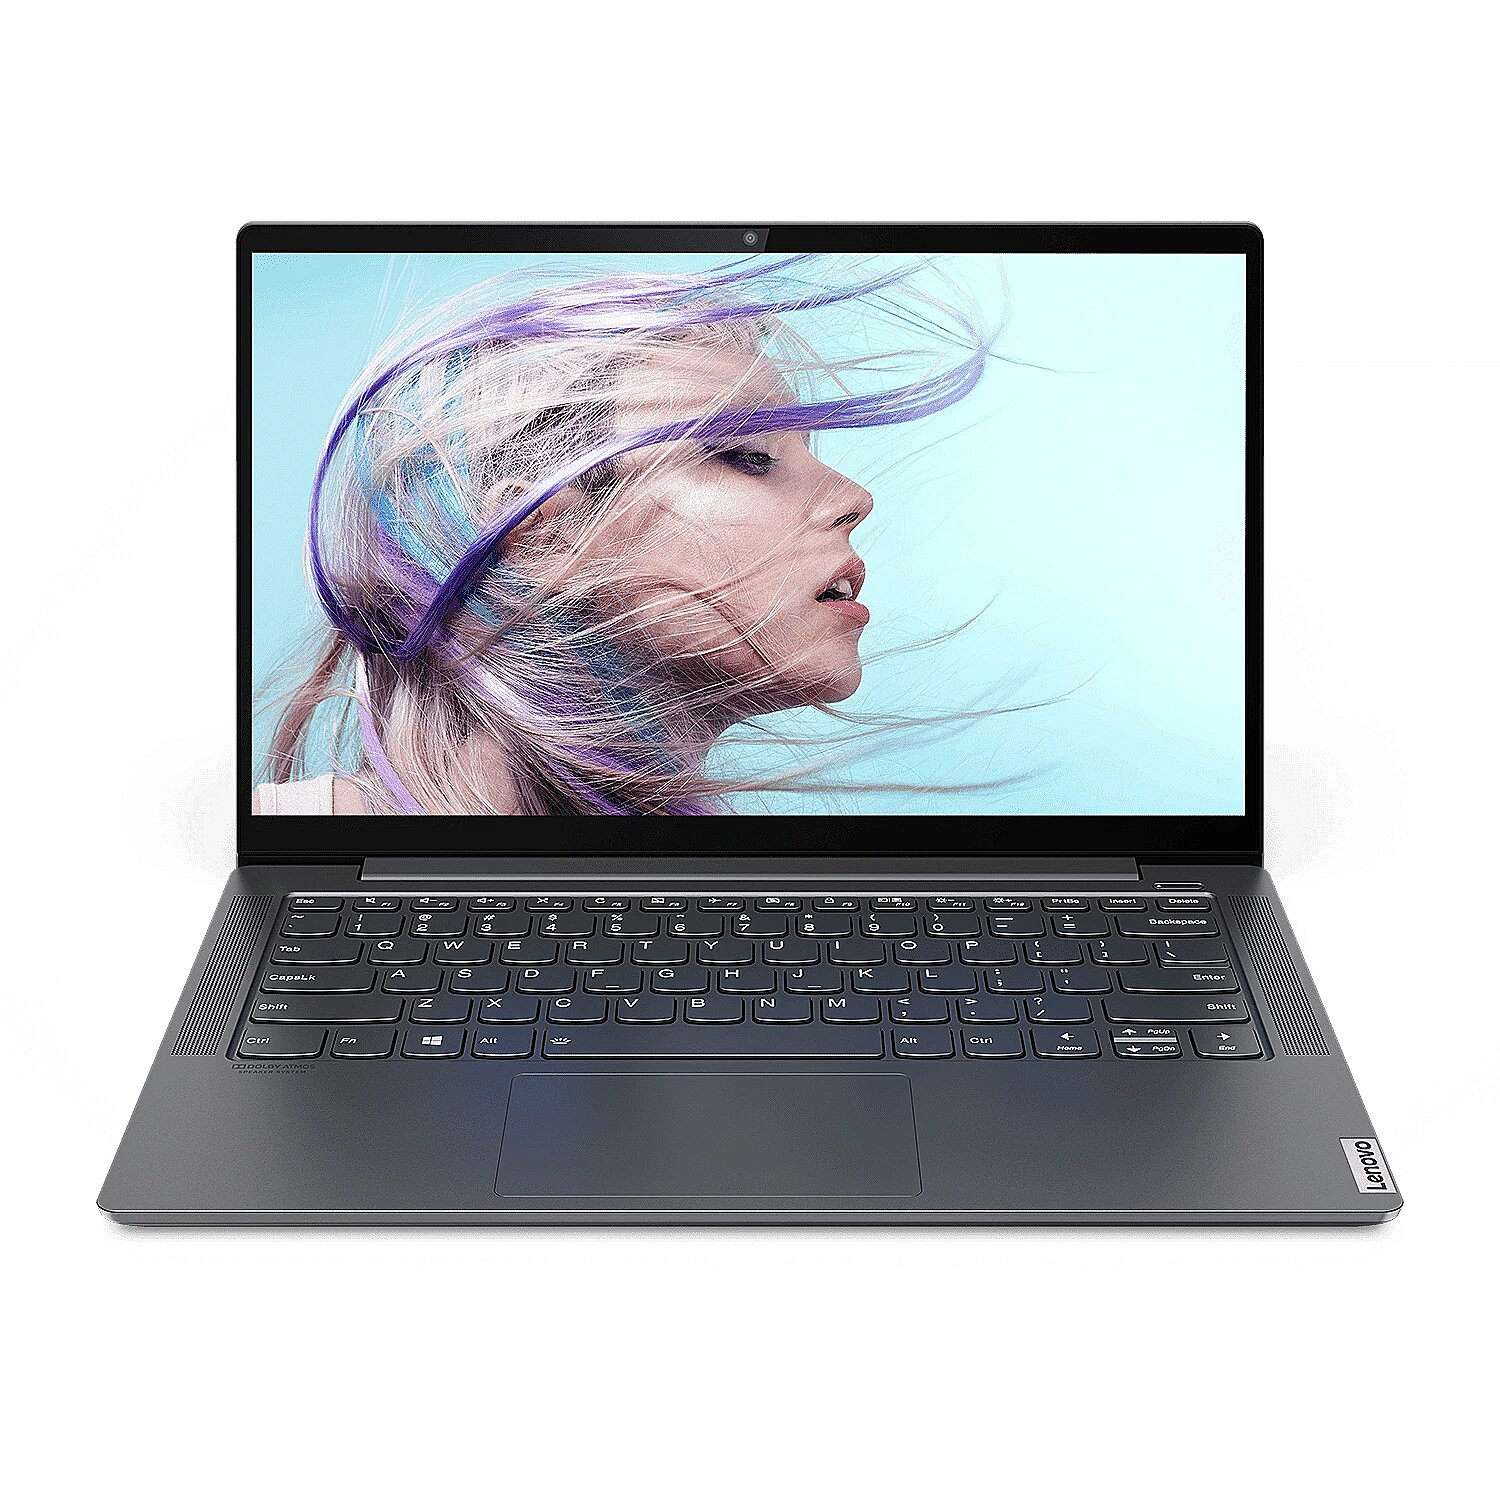 Lenovo Yoga S740-14IIL Iron Grey, 14